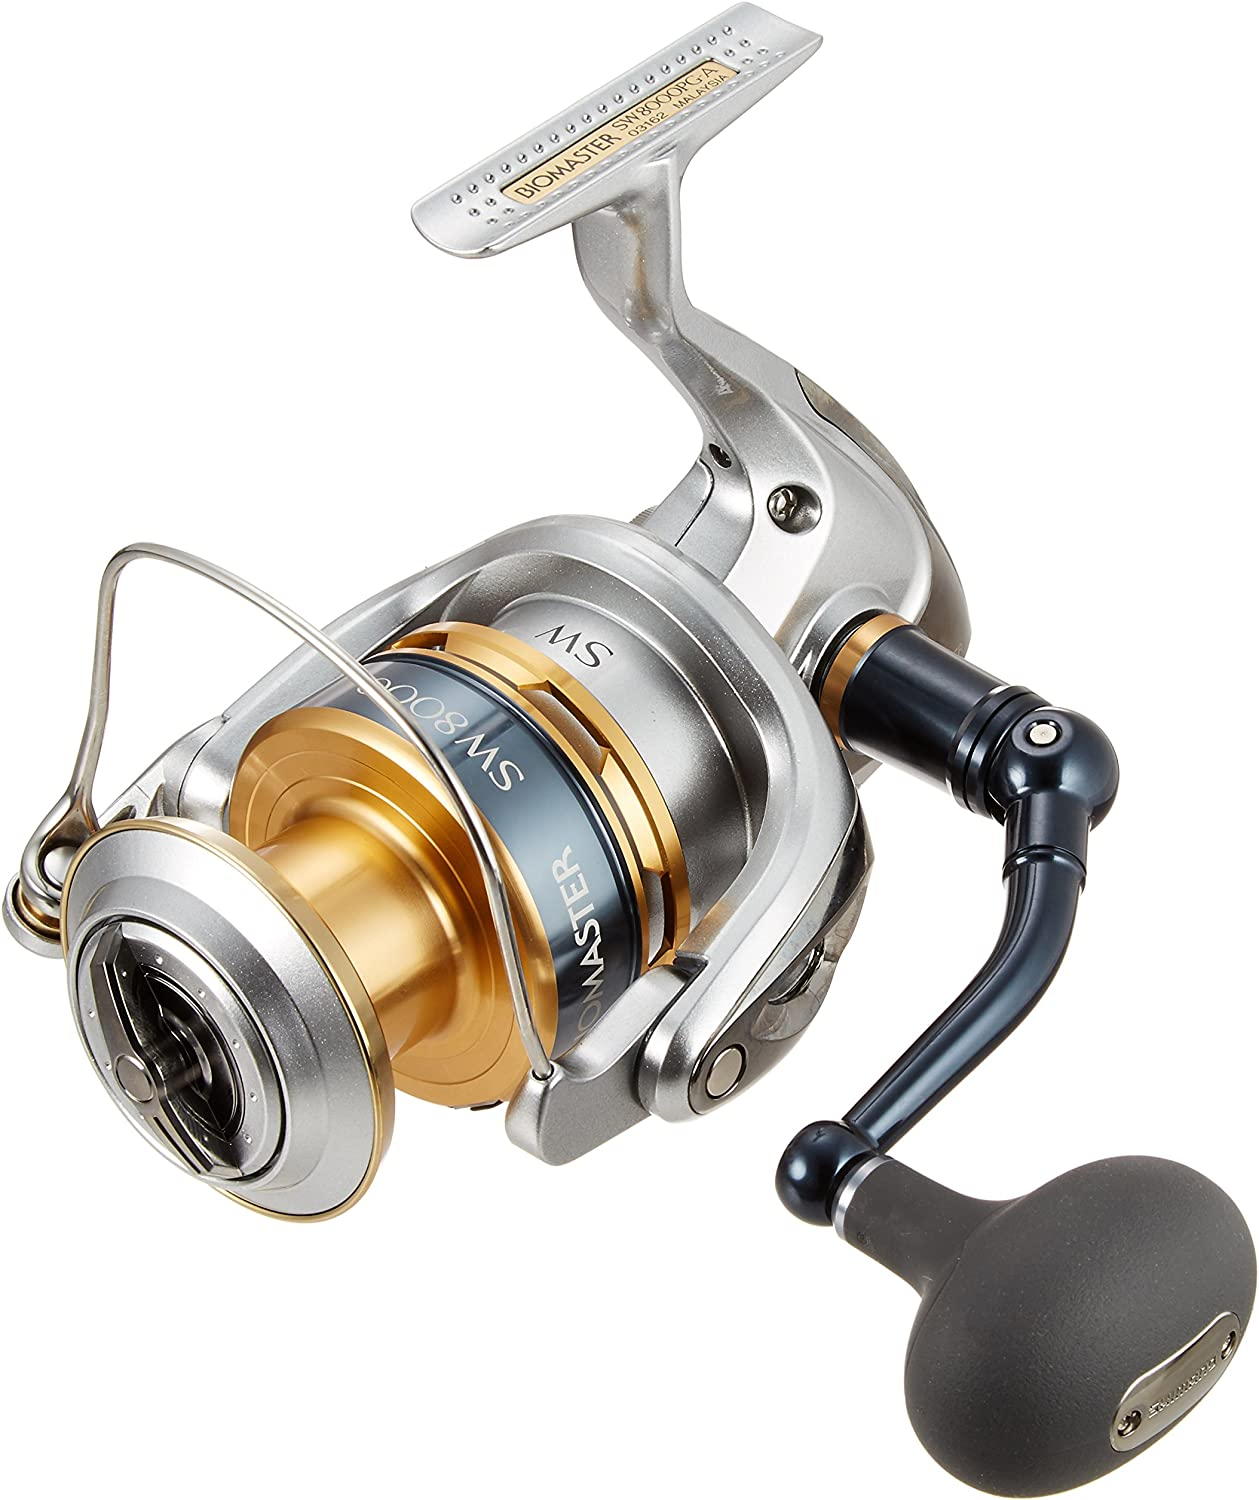 SHIMANO NEW 13 BIOMASTER SW 8000PG Spinning fishing reel